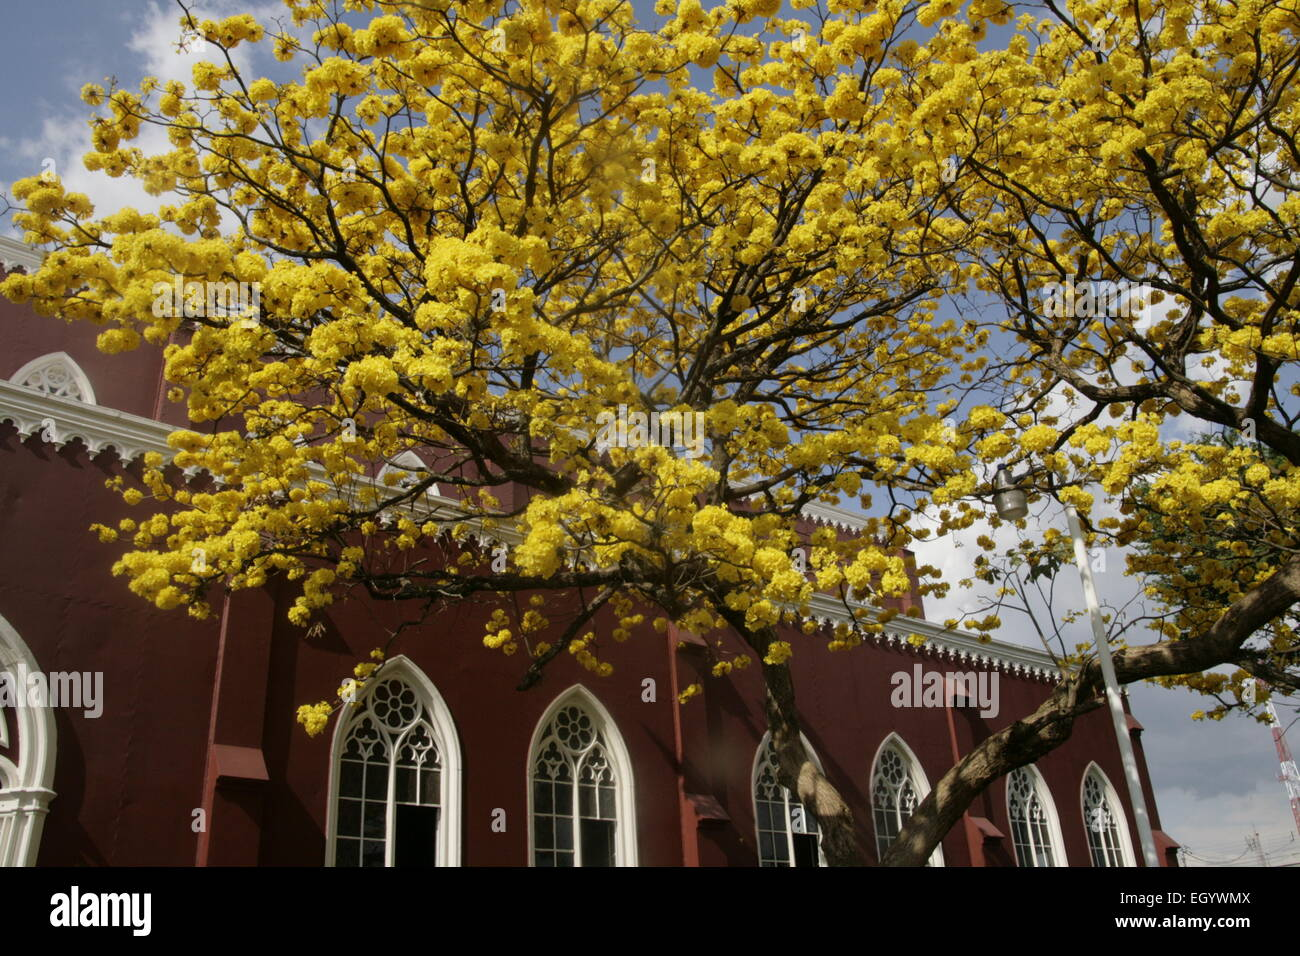 Stunning yellow Cortez tree in full bloom outside the red metal church in Grecia, Costa Rica - Stock Image